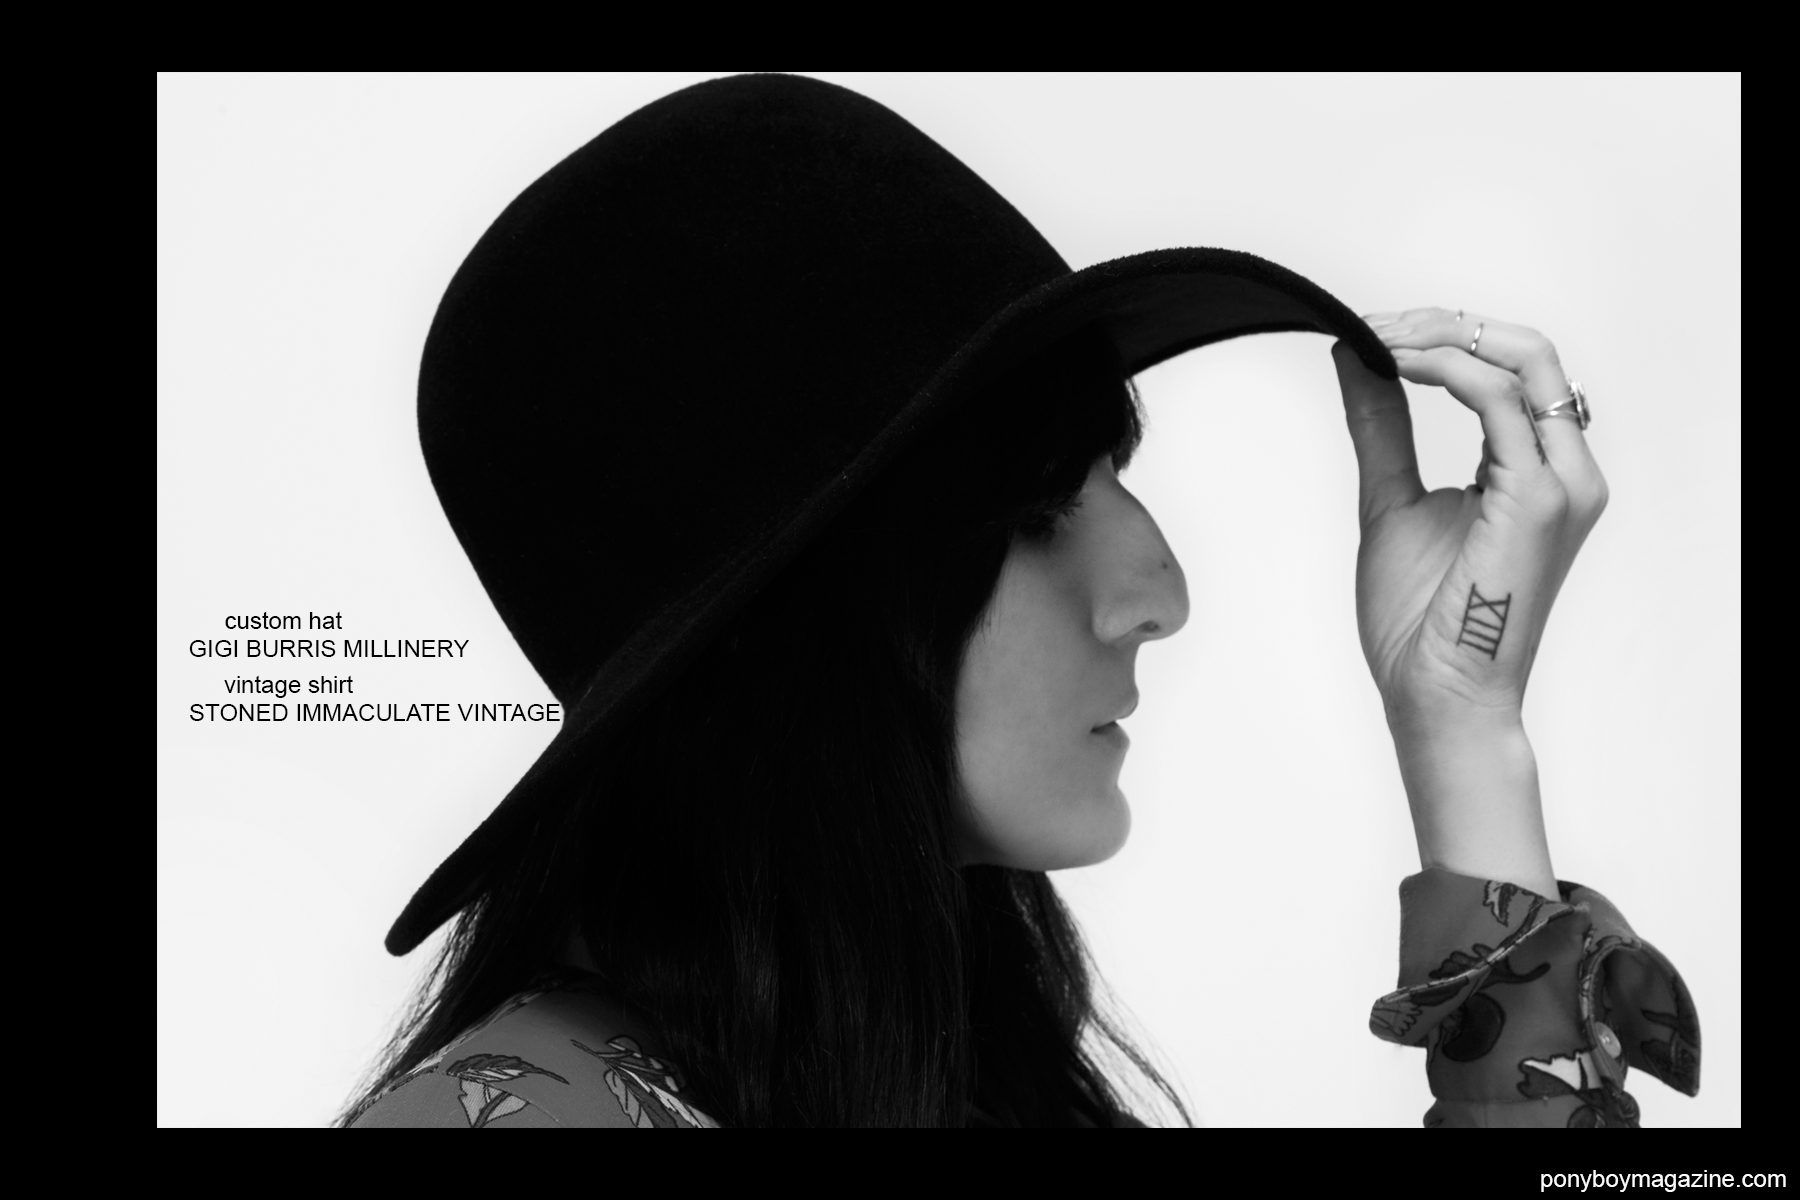 60's beauty Kristin Gallegos photographed in a Gigi Burris hat for Ponyboy magazine by Alexander Thompson in New York.